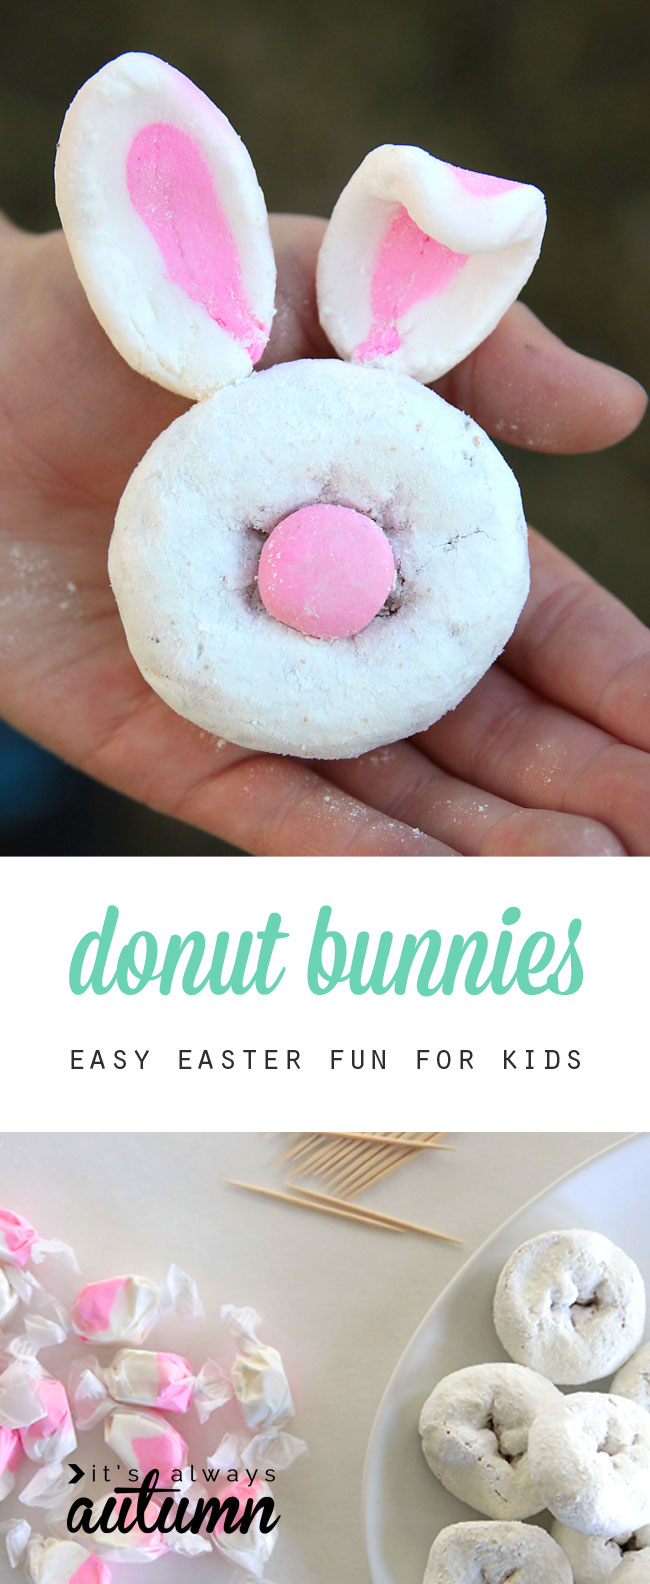 Mini Donut Bunny Rabbits Easy Easter Craft For Kids It S Always